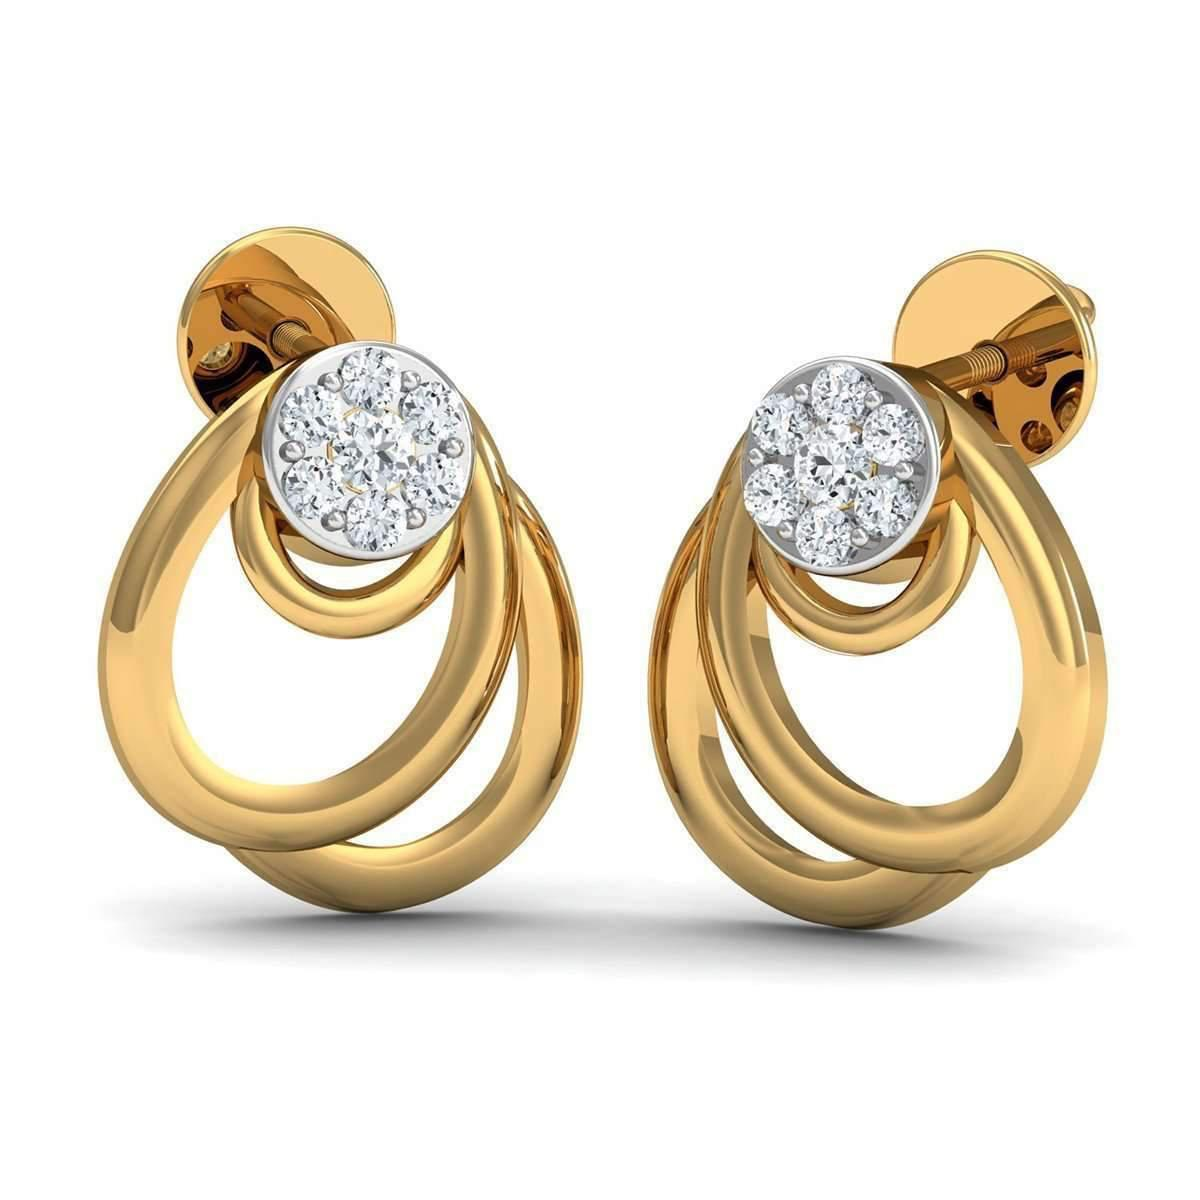 Diamoire Jewels 10 Round Cut Diamonds and 18kt Yellow Gold Nature Inspired Pave Earrings OKXfR